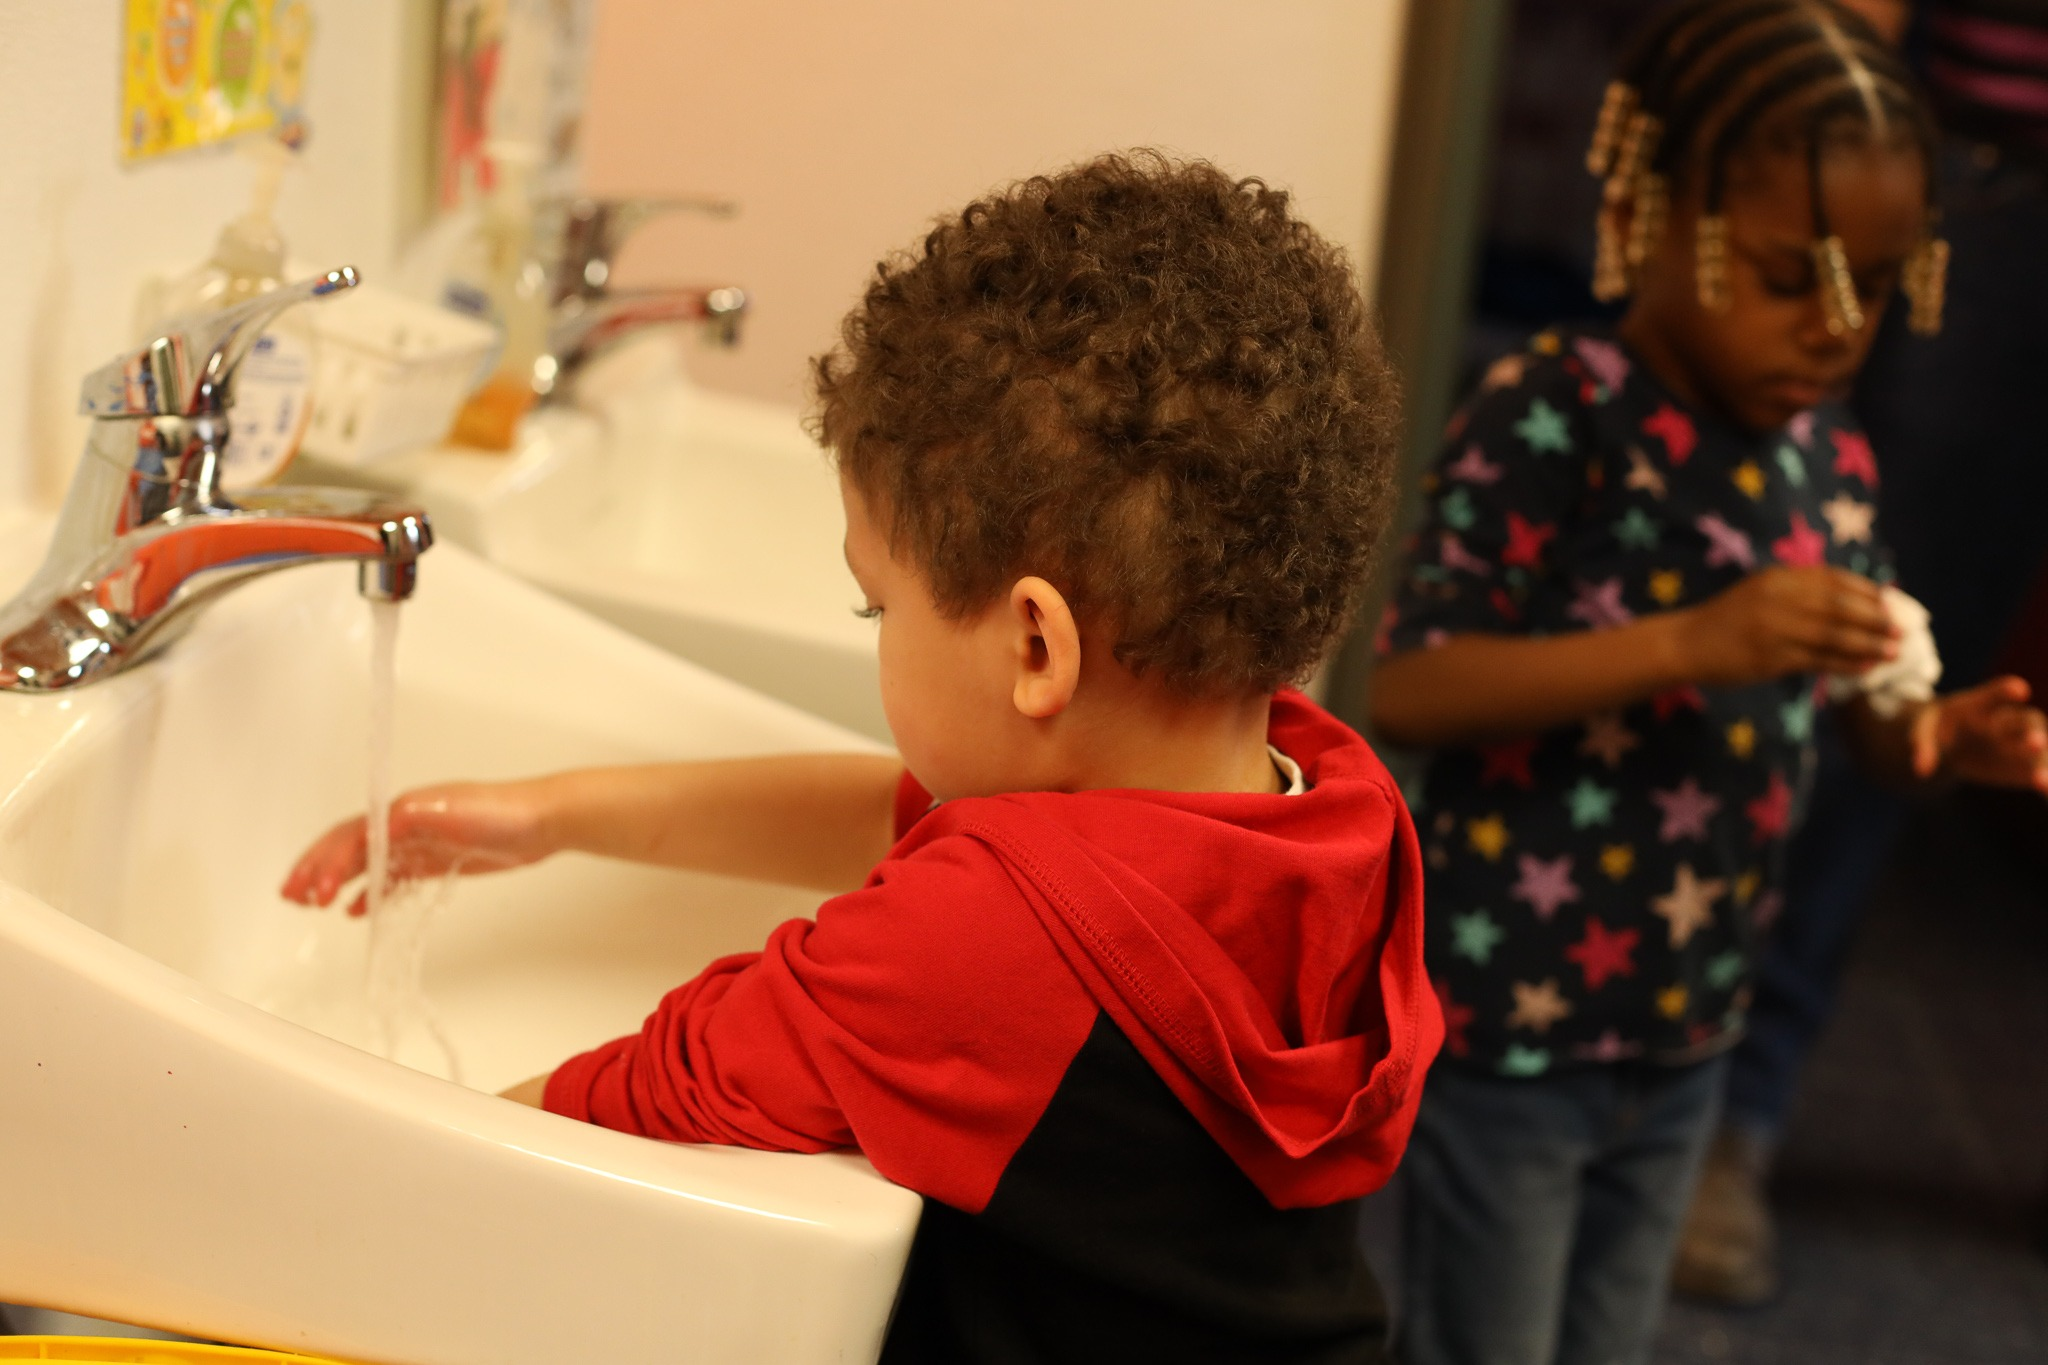 Child washing hands in the sink